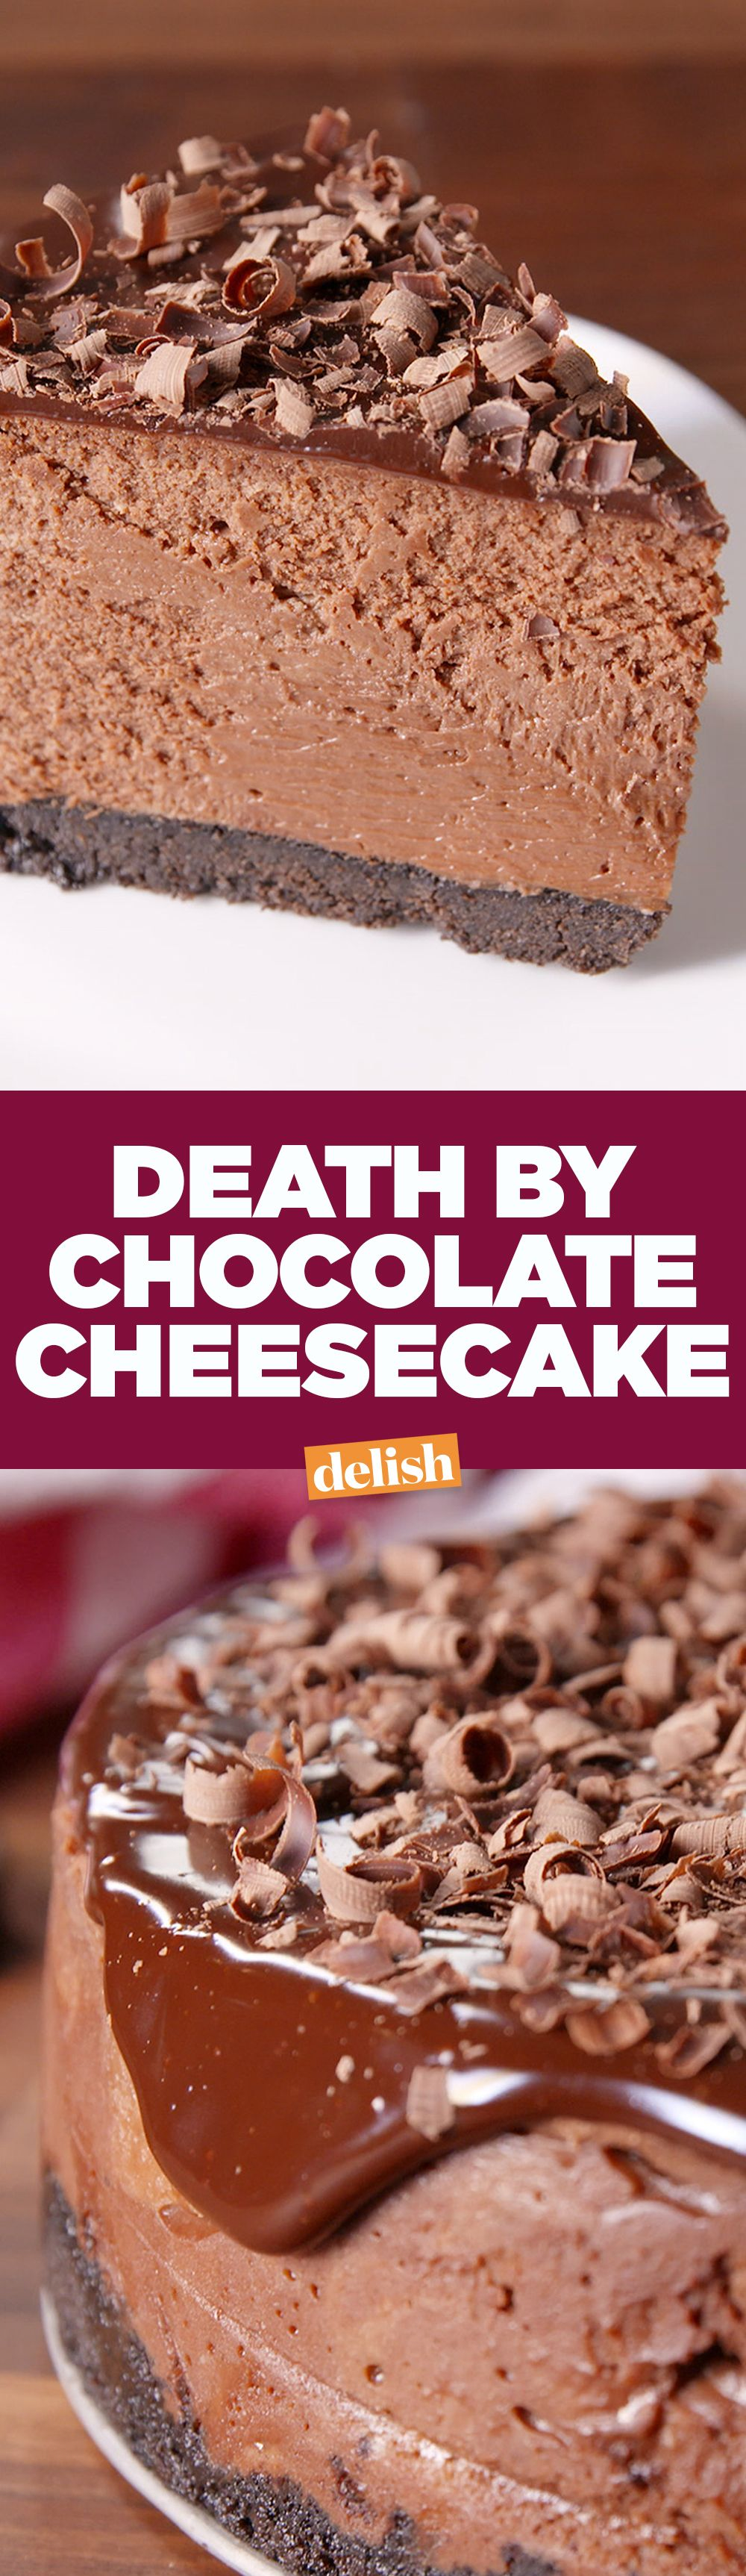 Death By Chocolate Cheesecake #cheesecakerecipes